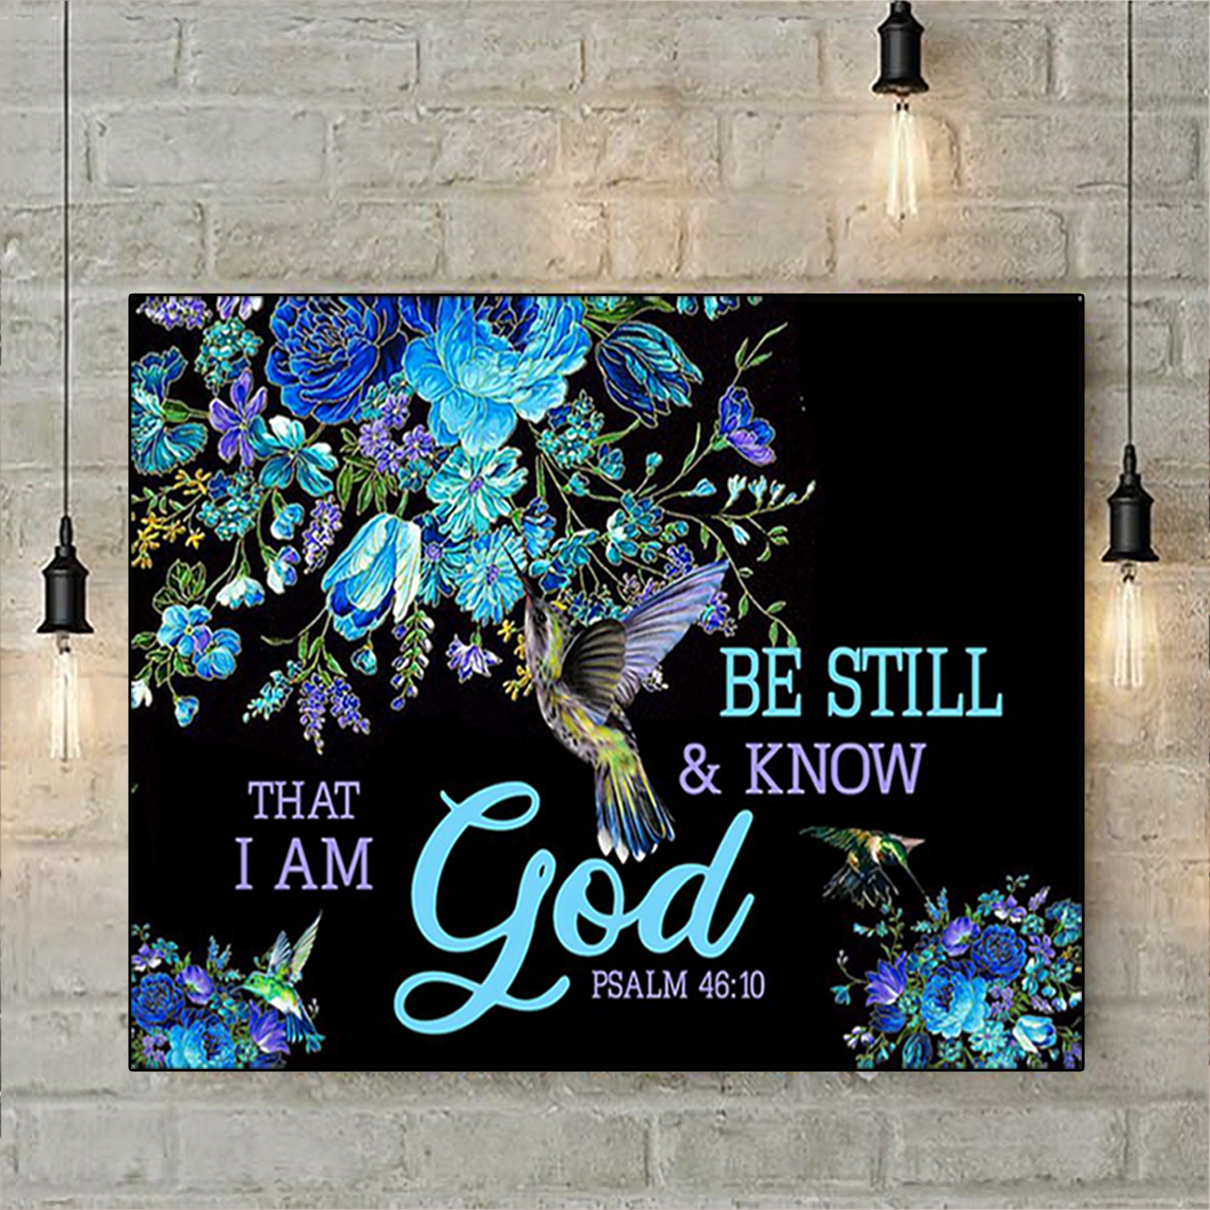 Be still and know that I am God psalm 4610 poster A1